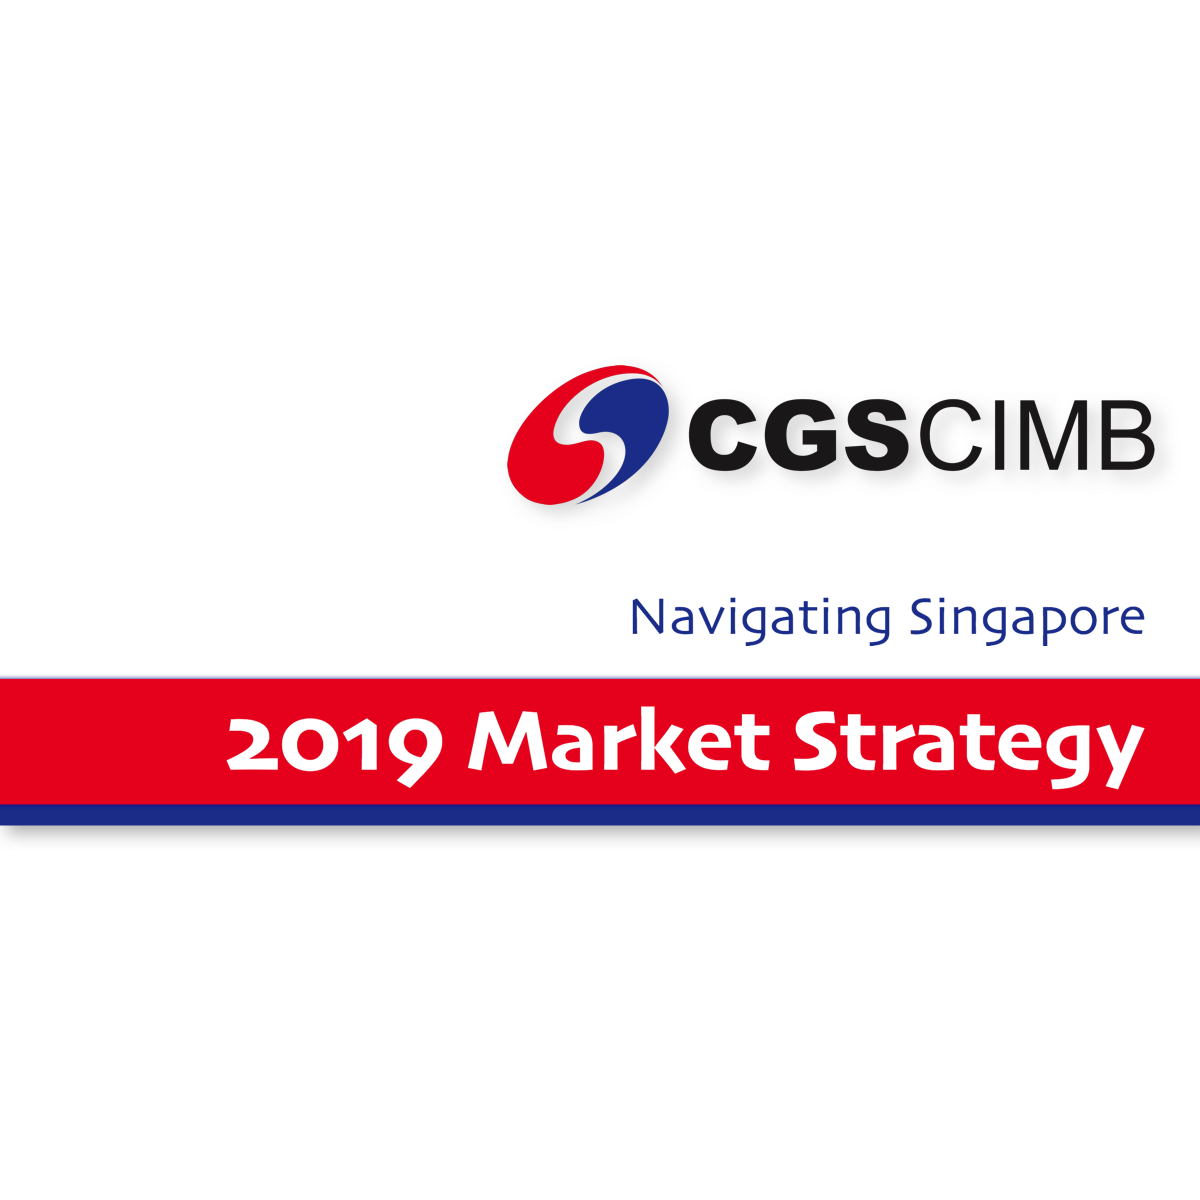 2019 Market Strategy Singapore - CGSCIMB Research | SGinvestors.io